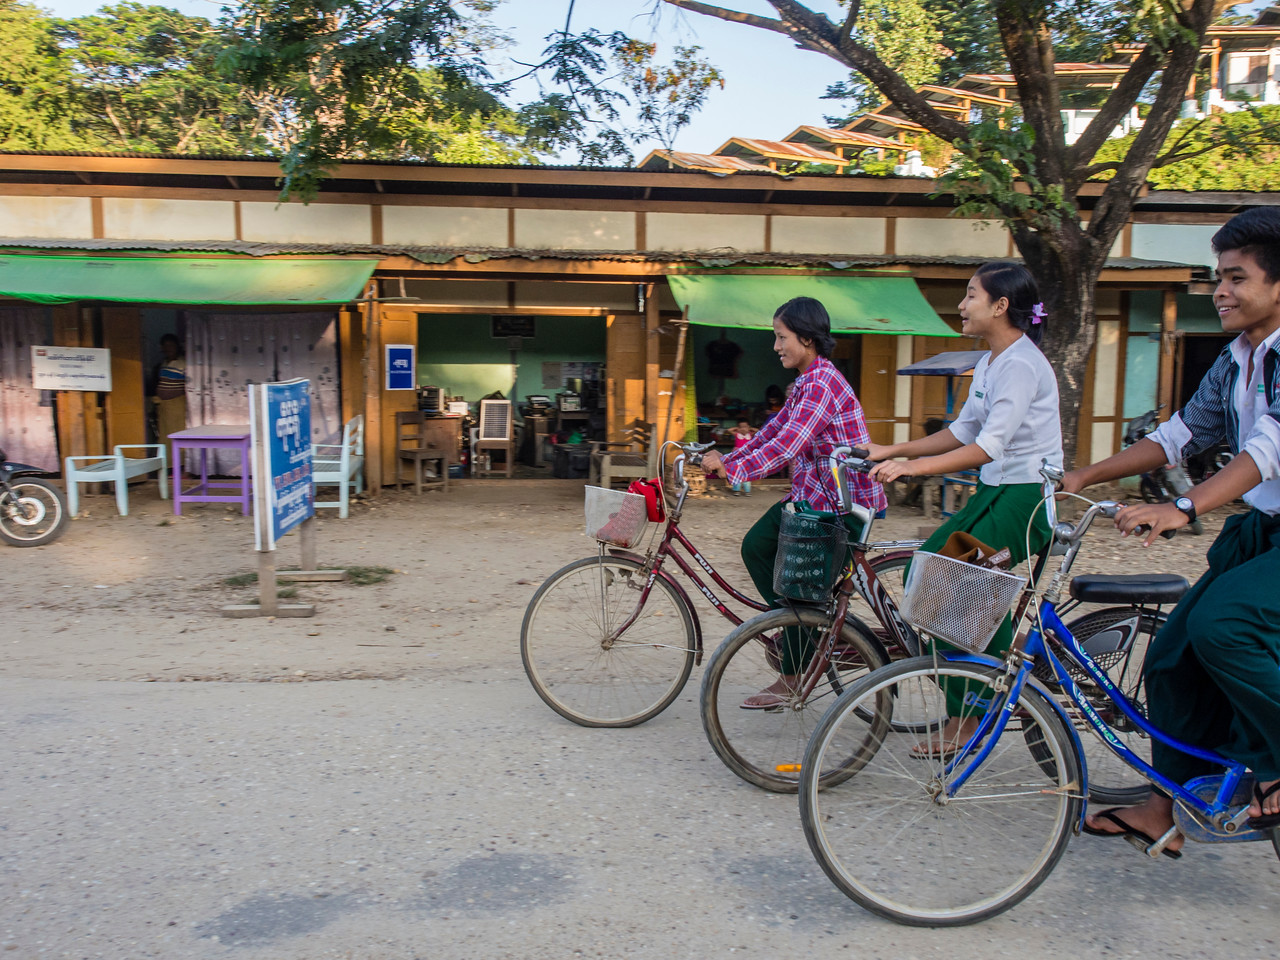 Schoolkids riding home from school, Paung Pyin village